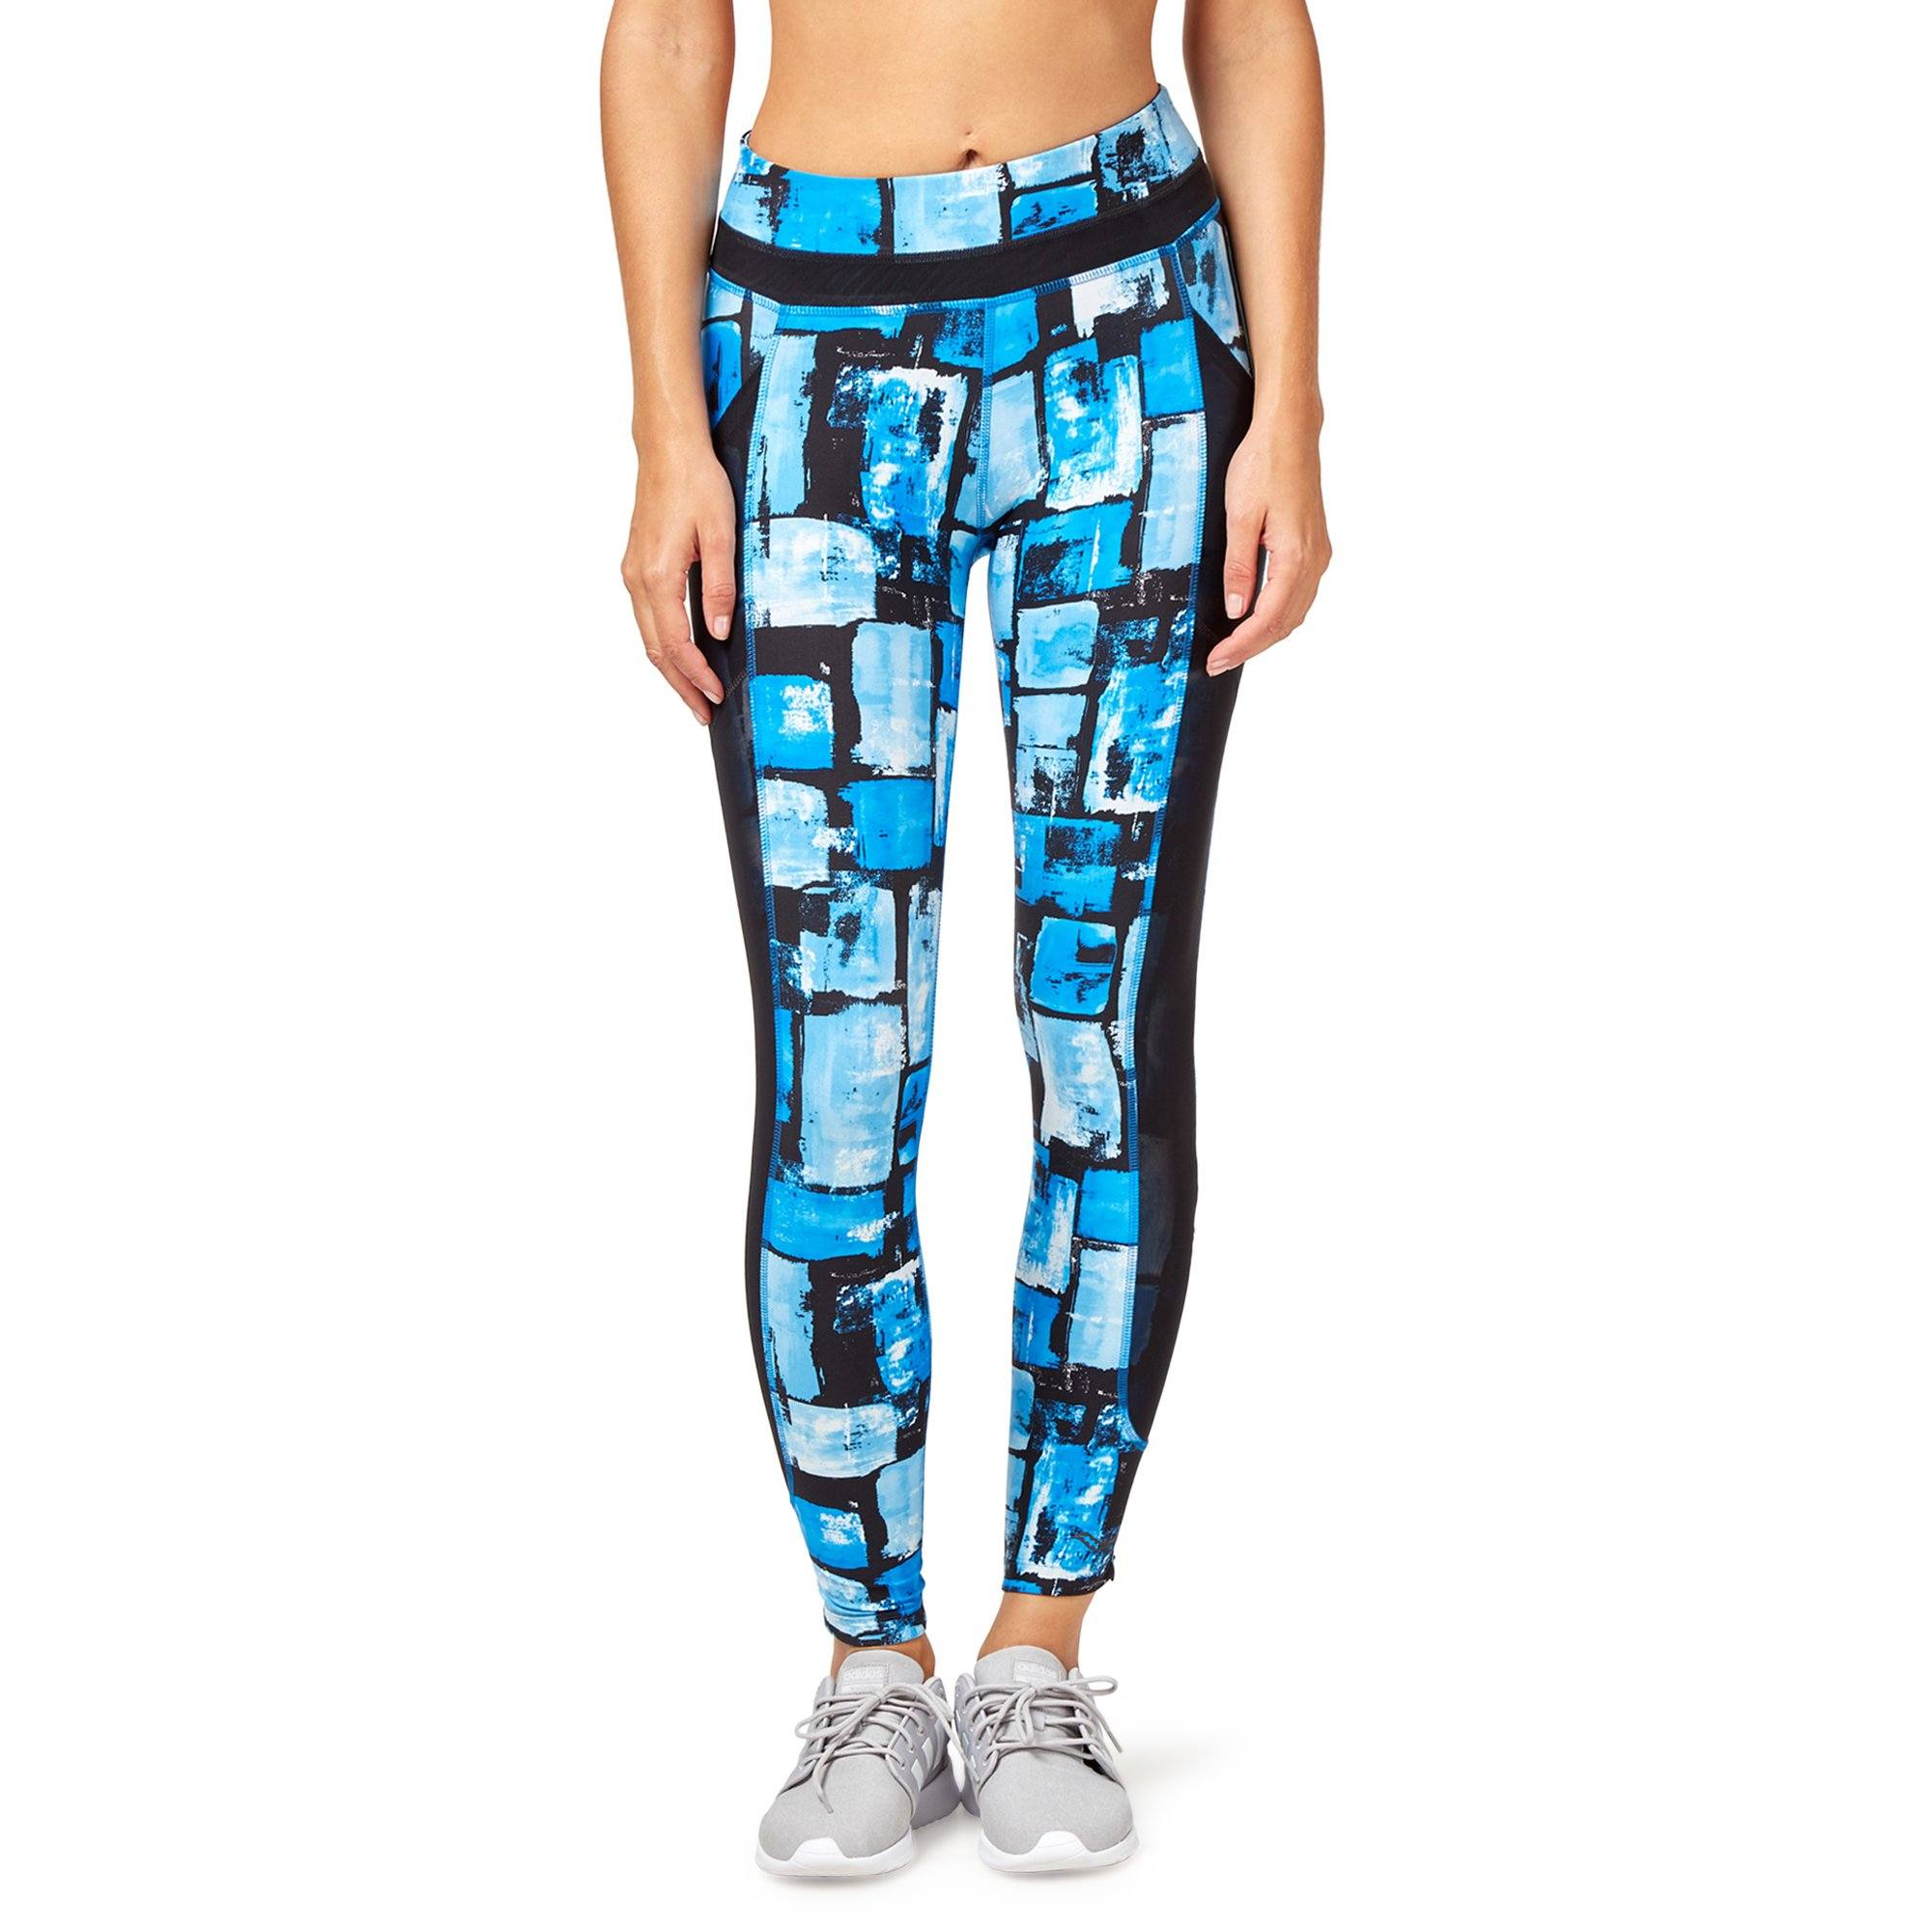 Saucony Bullet Tight - Sapphire Print Apparel Saucony  (2014998364219)